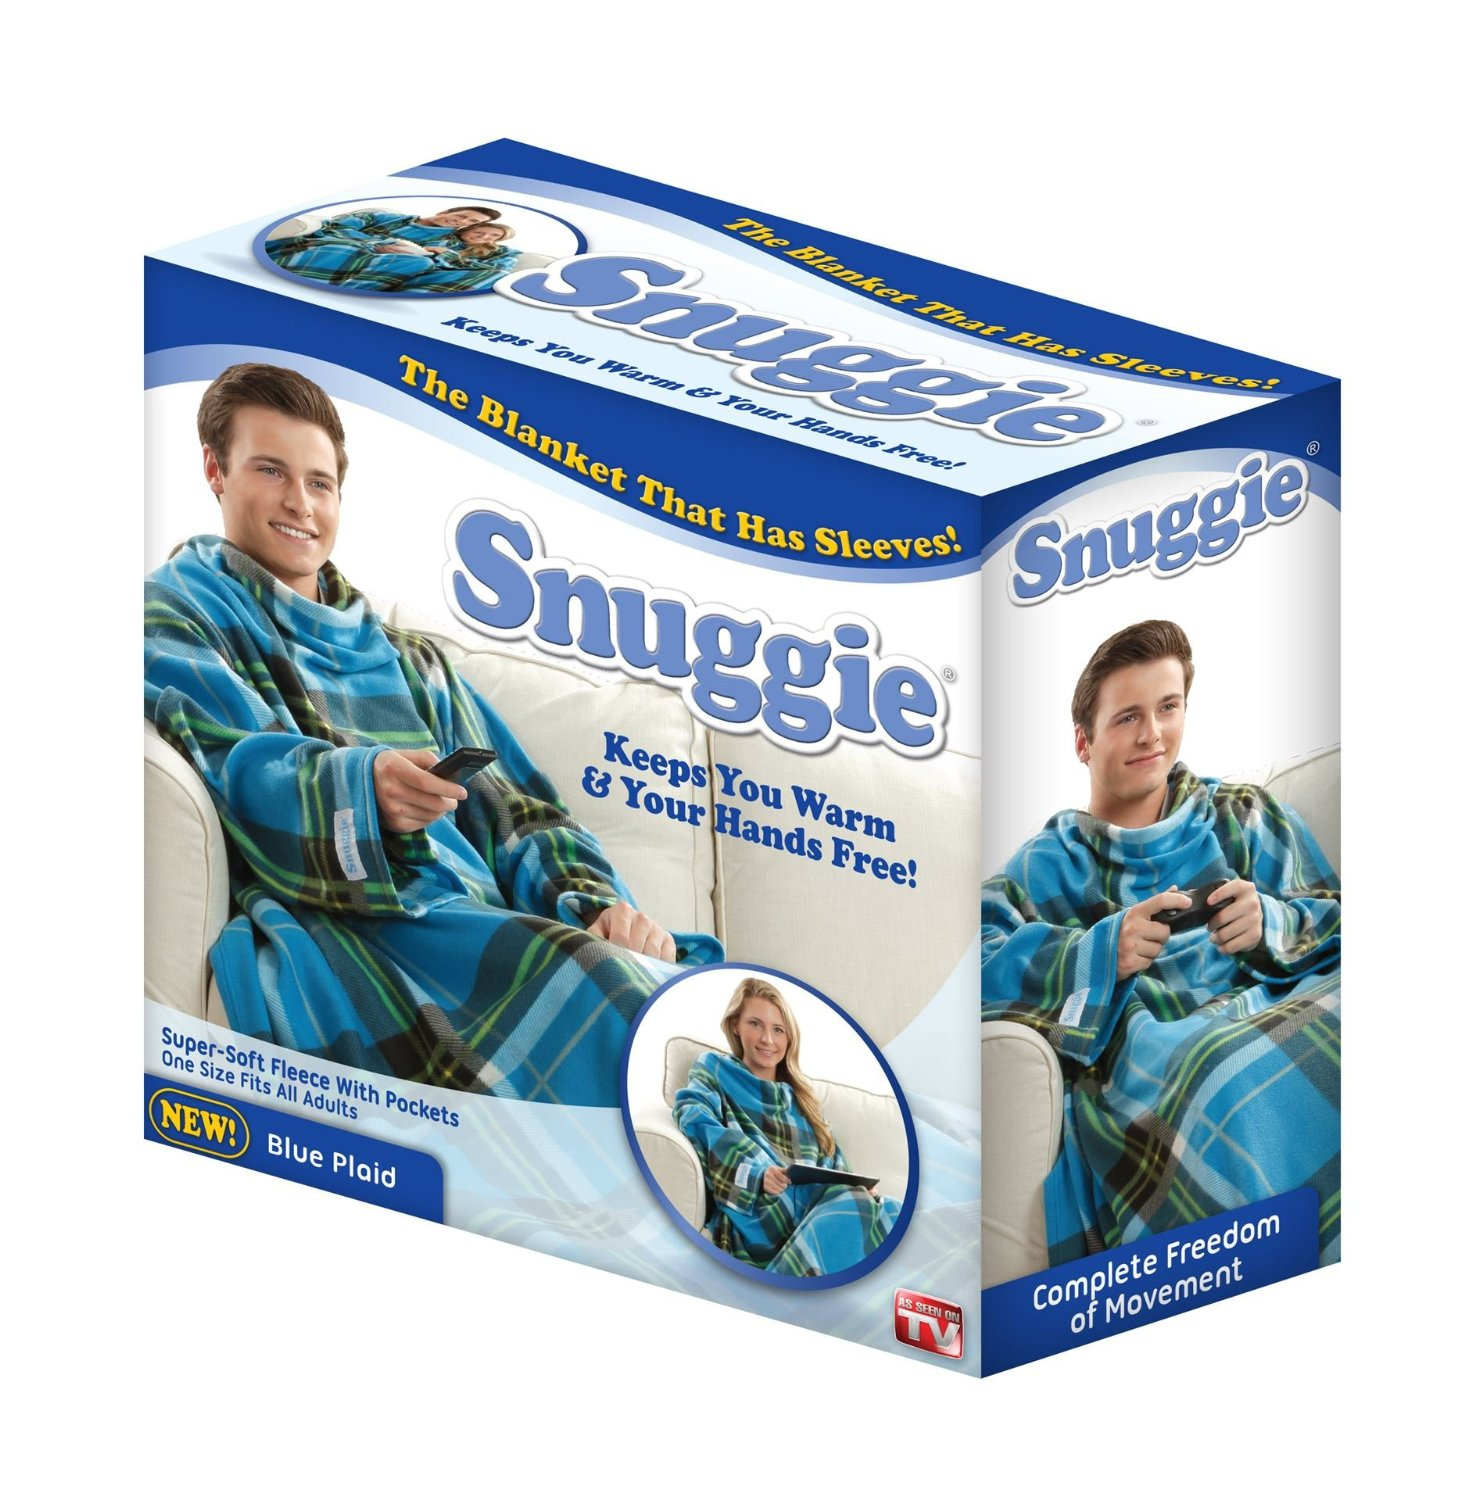 snuggie seen tv blanket amazon sleeves items pockets reship kitchen blankets plaid wearable